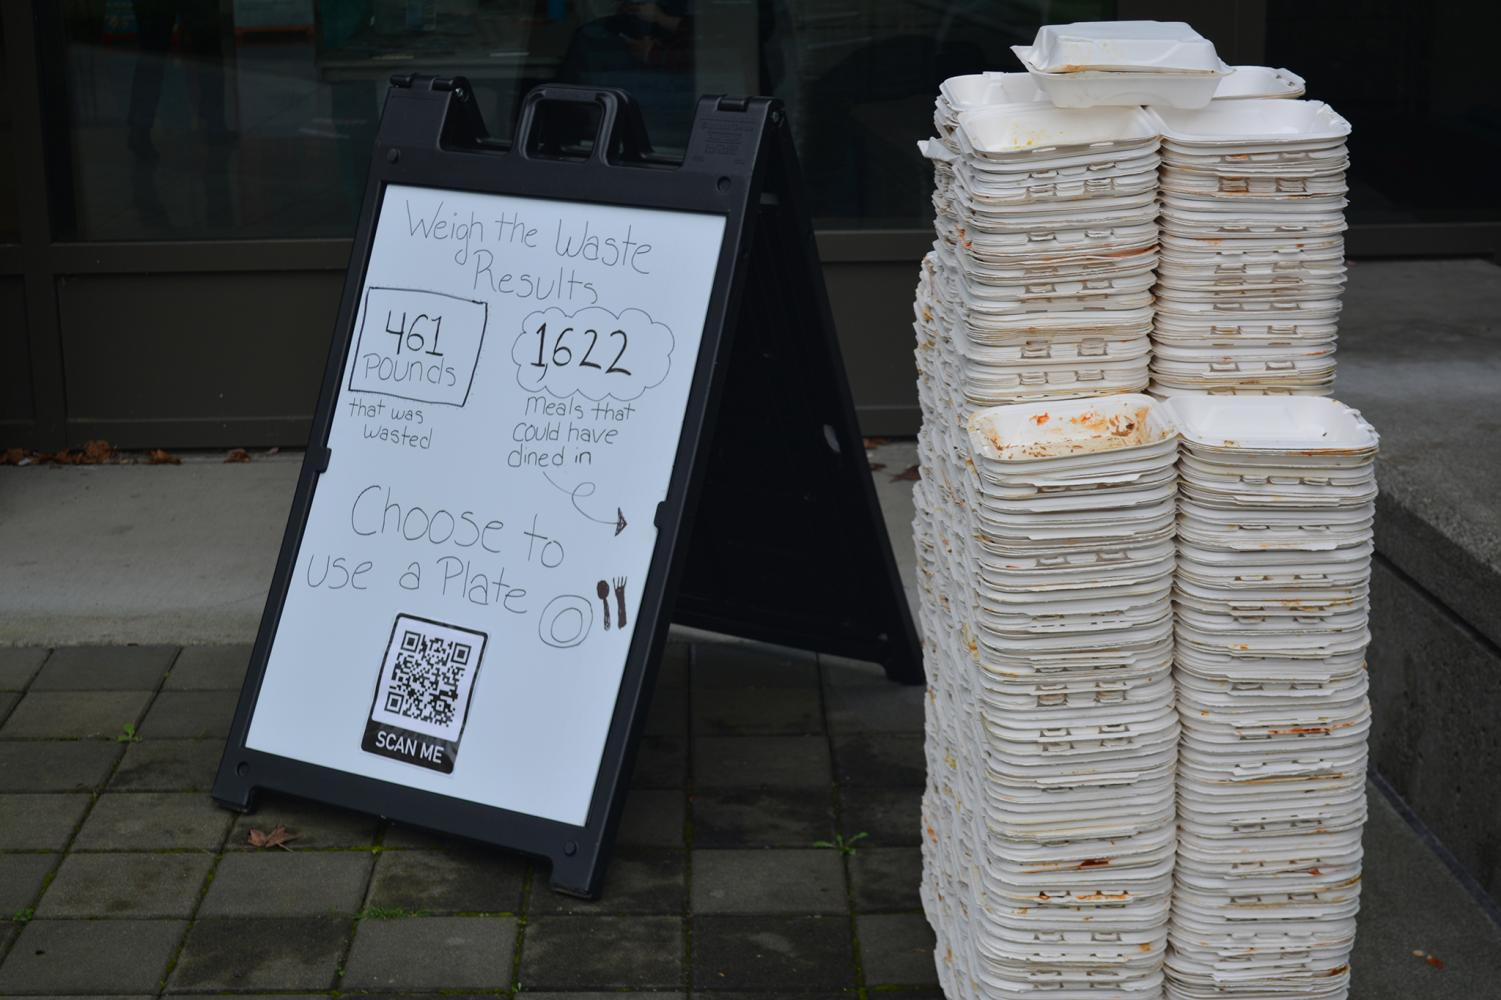 During the Weight the Waste event at C-street, volunteers weighed 461 pounds of food waste and counted 1,622 take-out boxes.